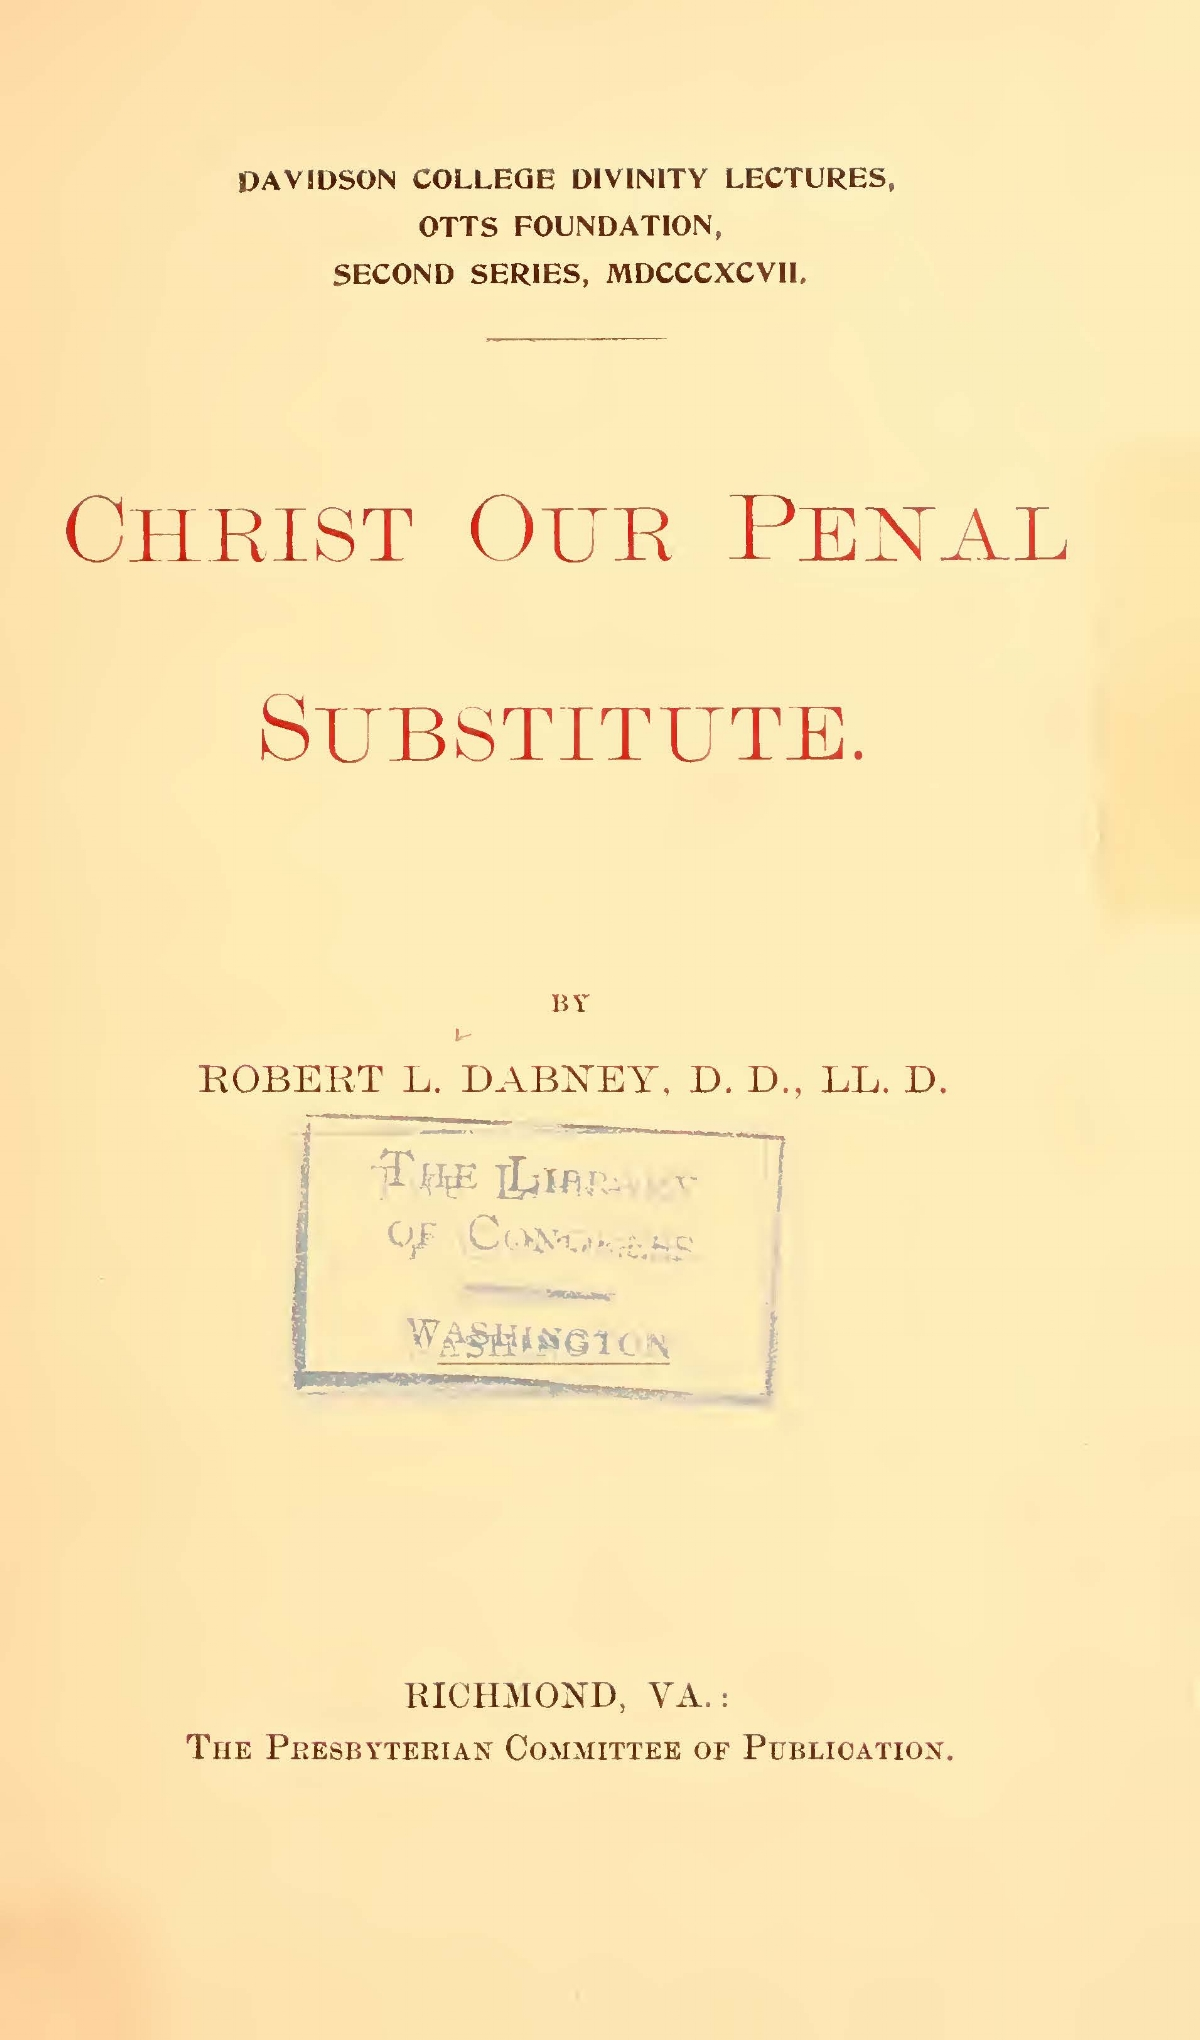 Dabney, Robert Lewis, Christ Our Penal Subsitute Title Page.jpg